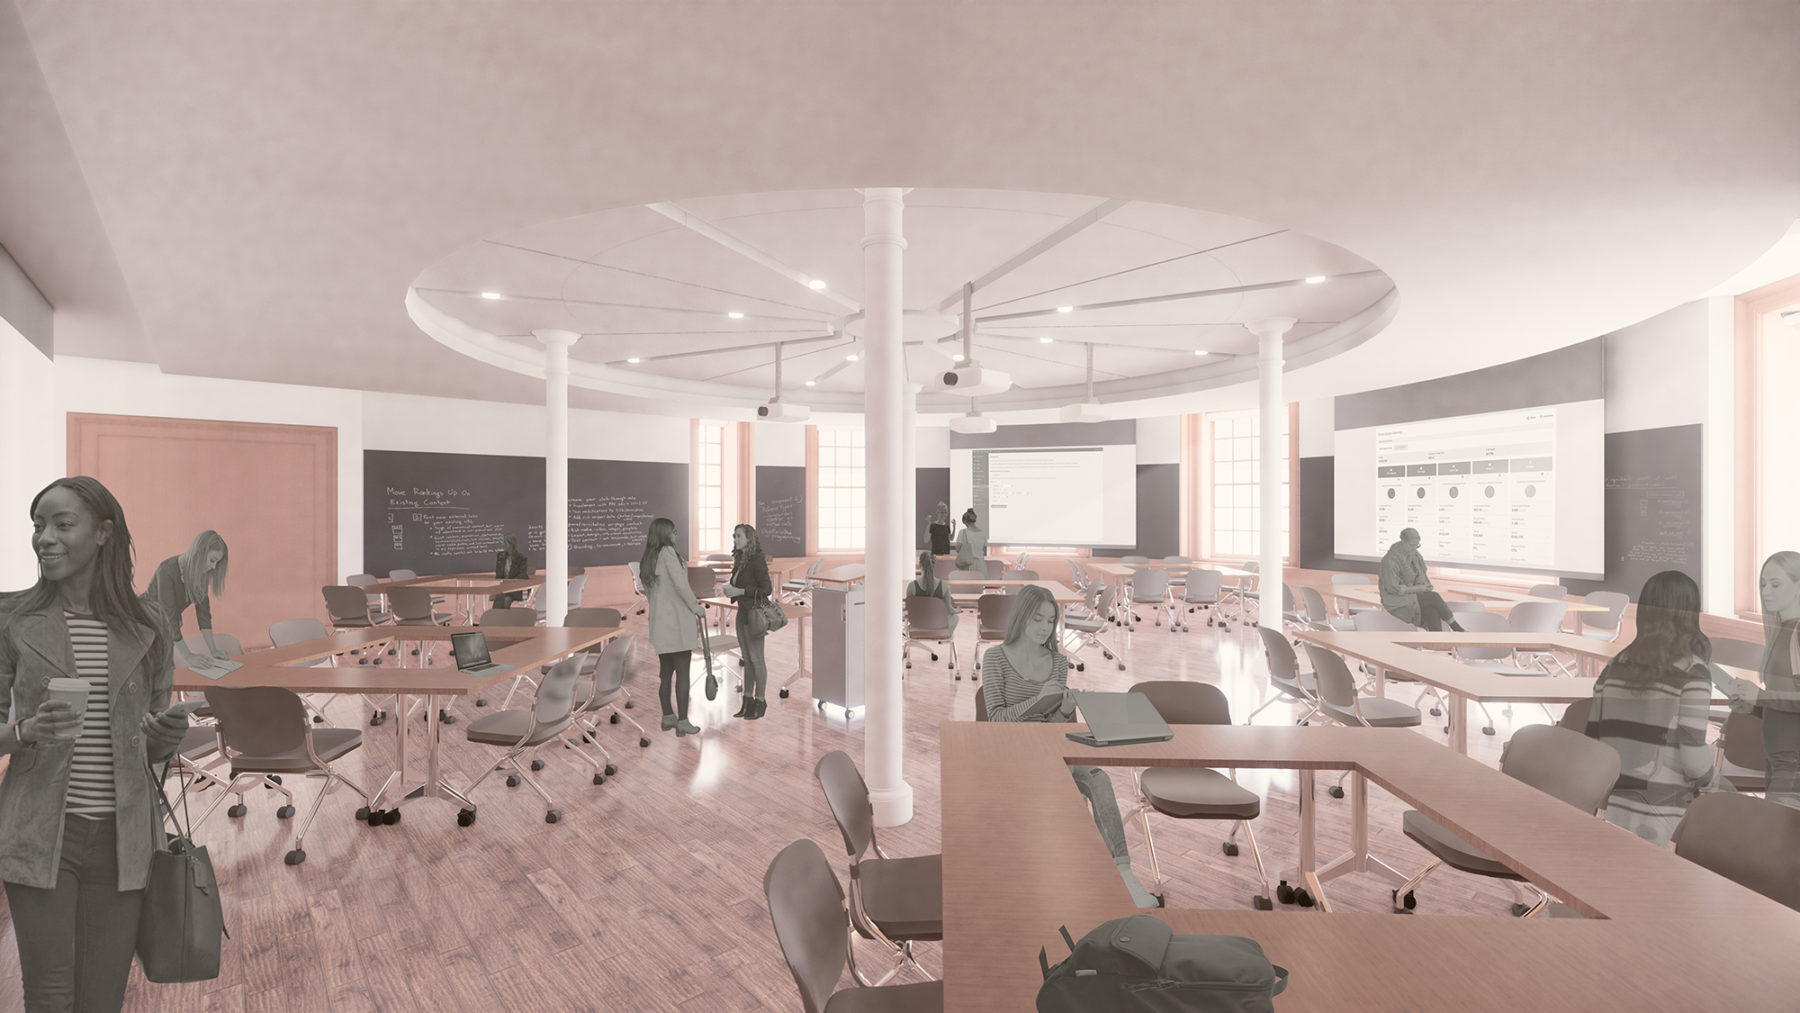 Rendering of students in a circular classroom